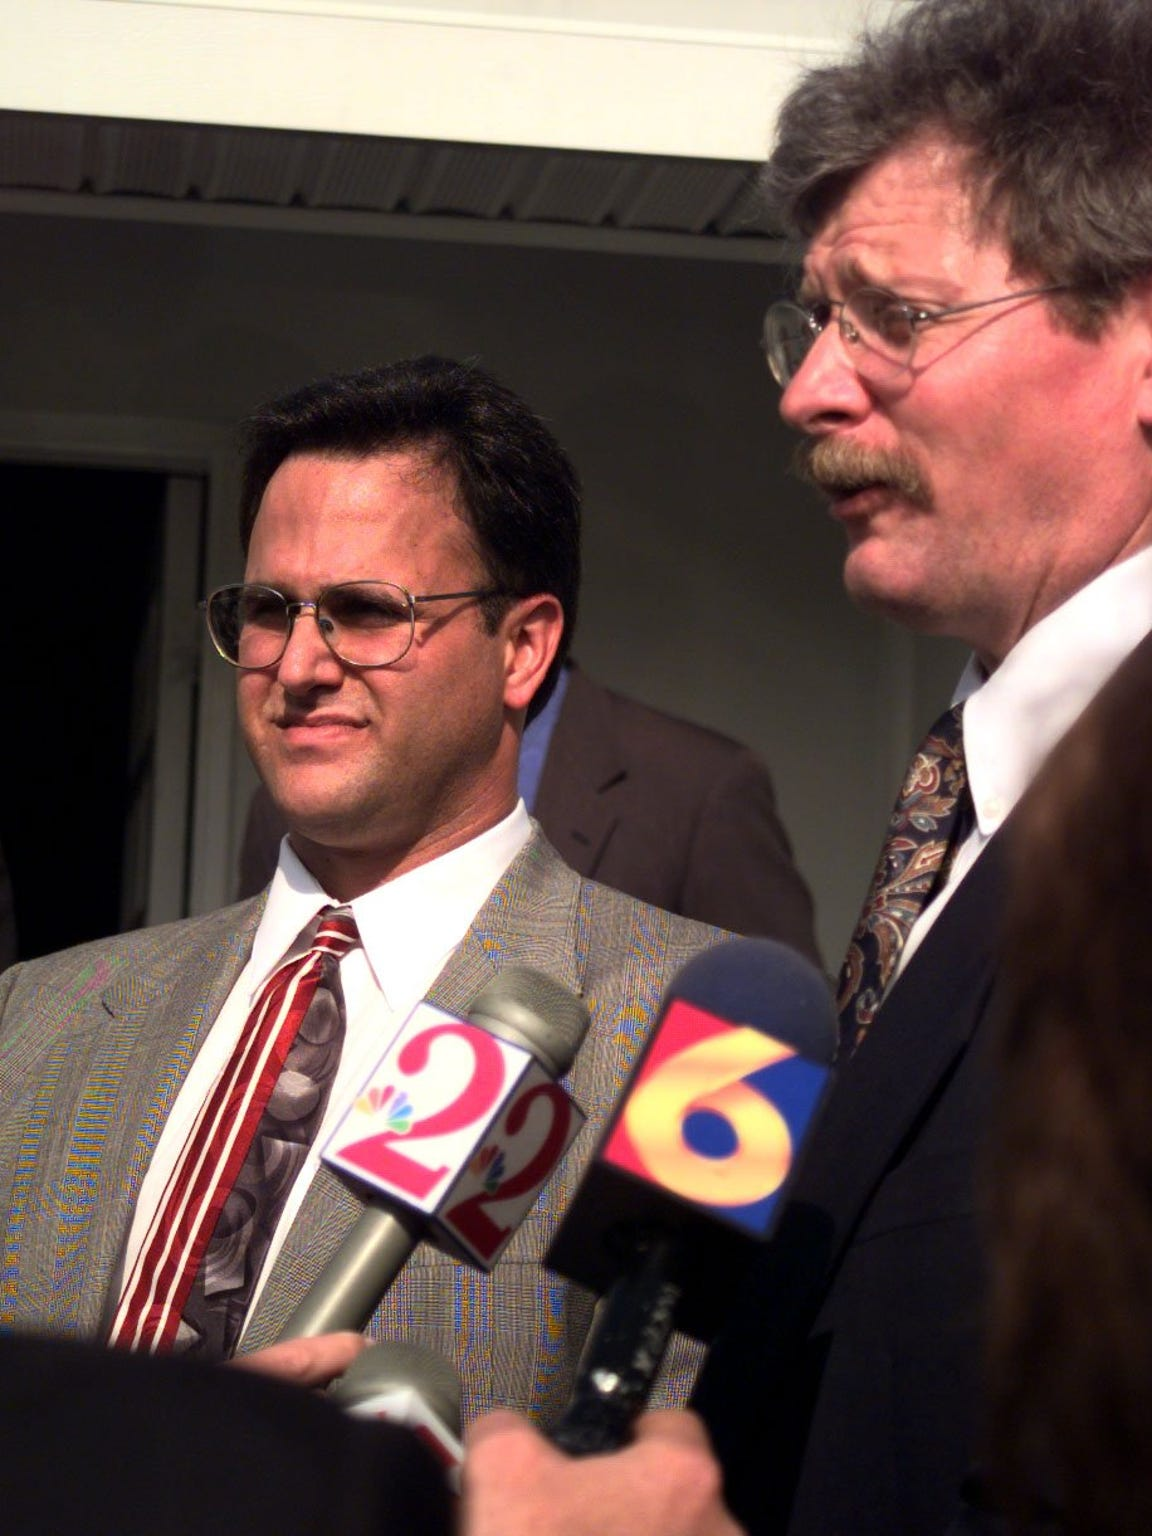 FIle- 1991: Lawyer Gregory W. Eisenmenger